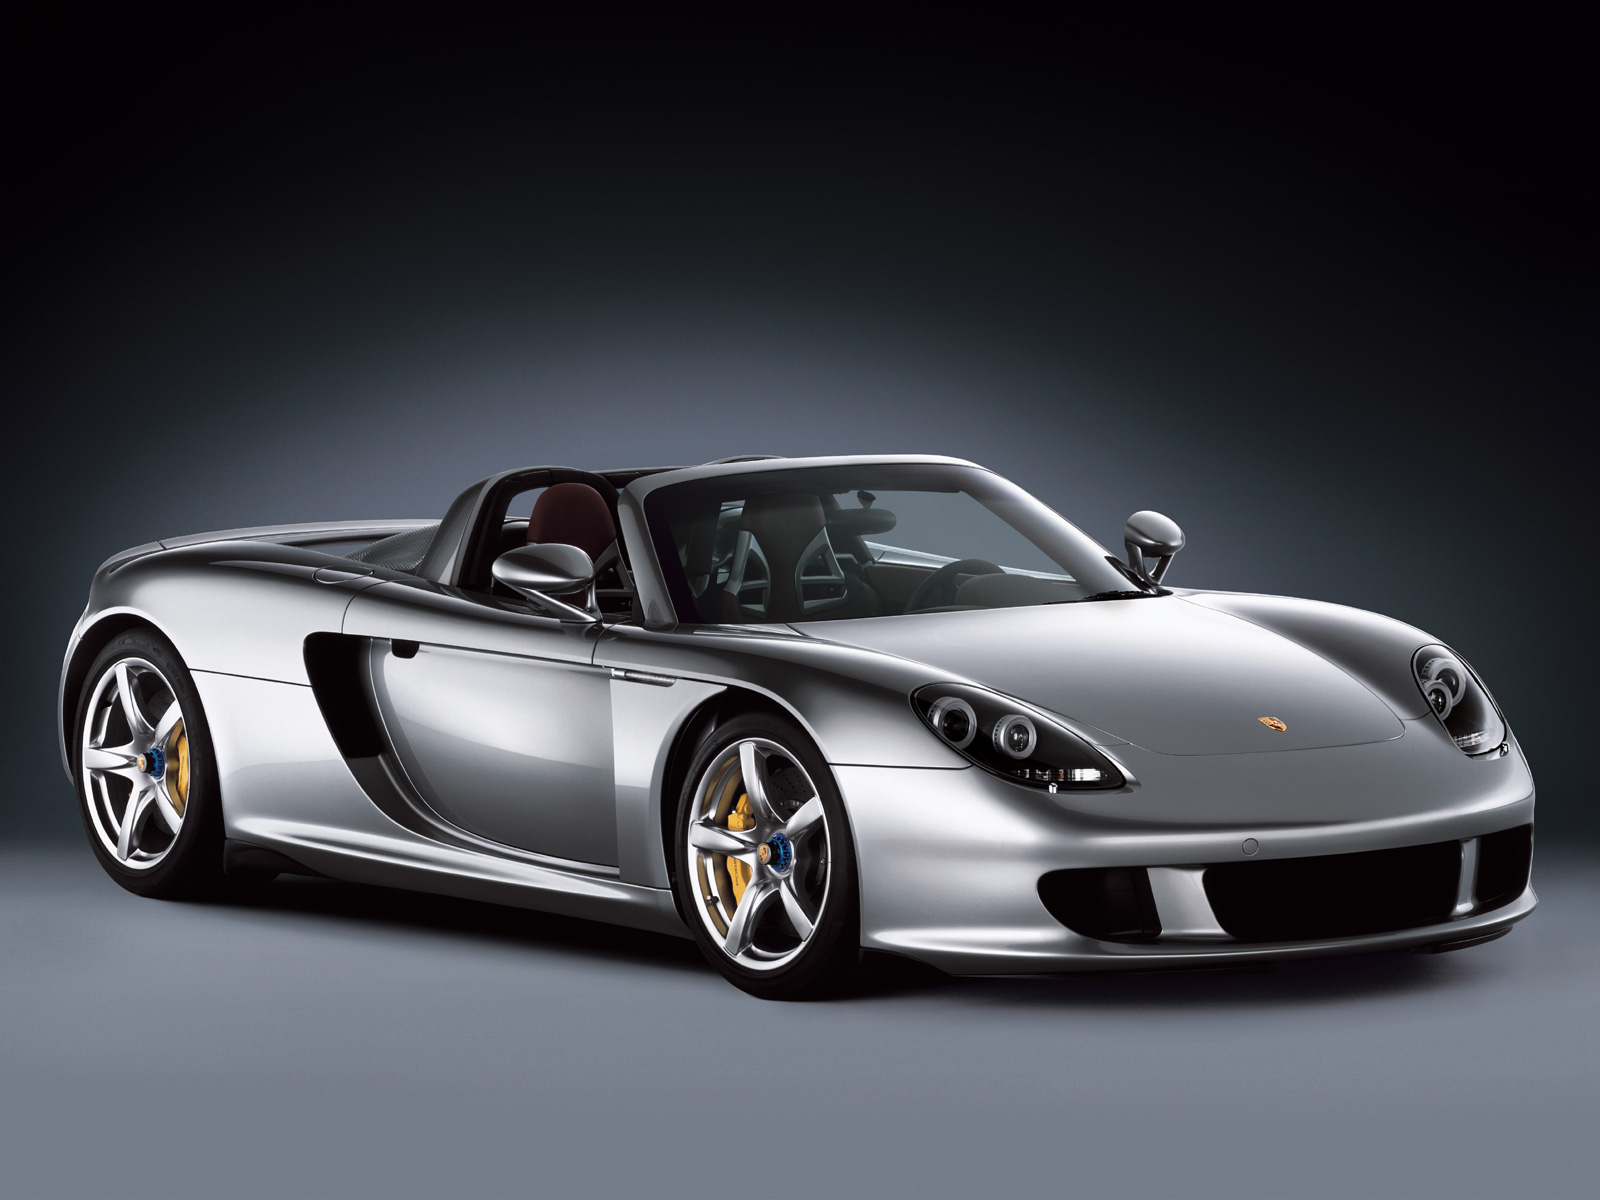 Porsche Carrera GT photo 8514